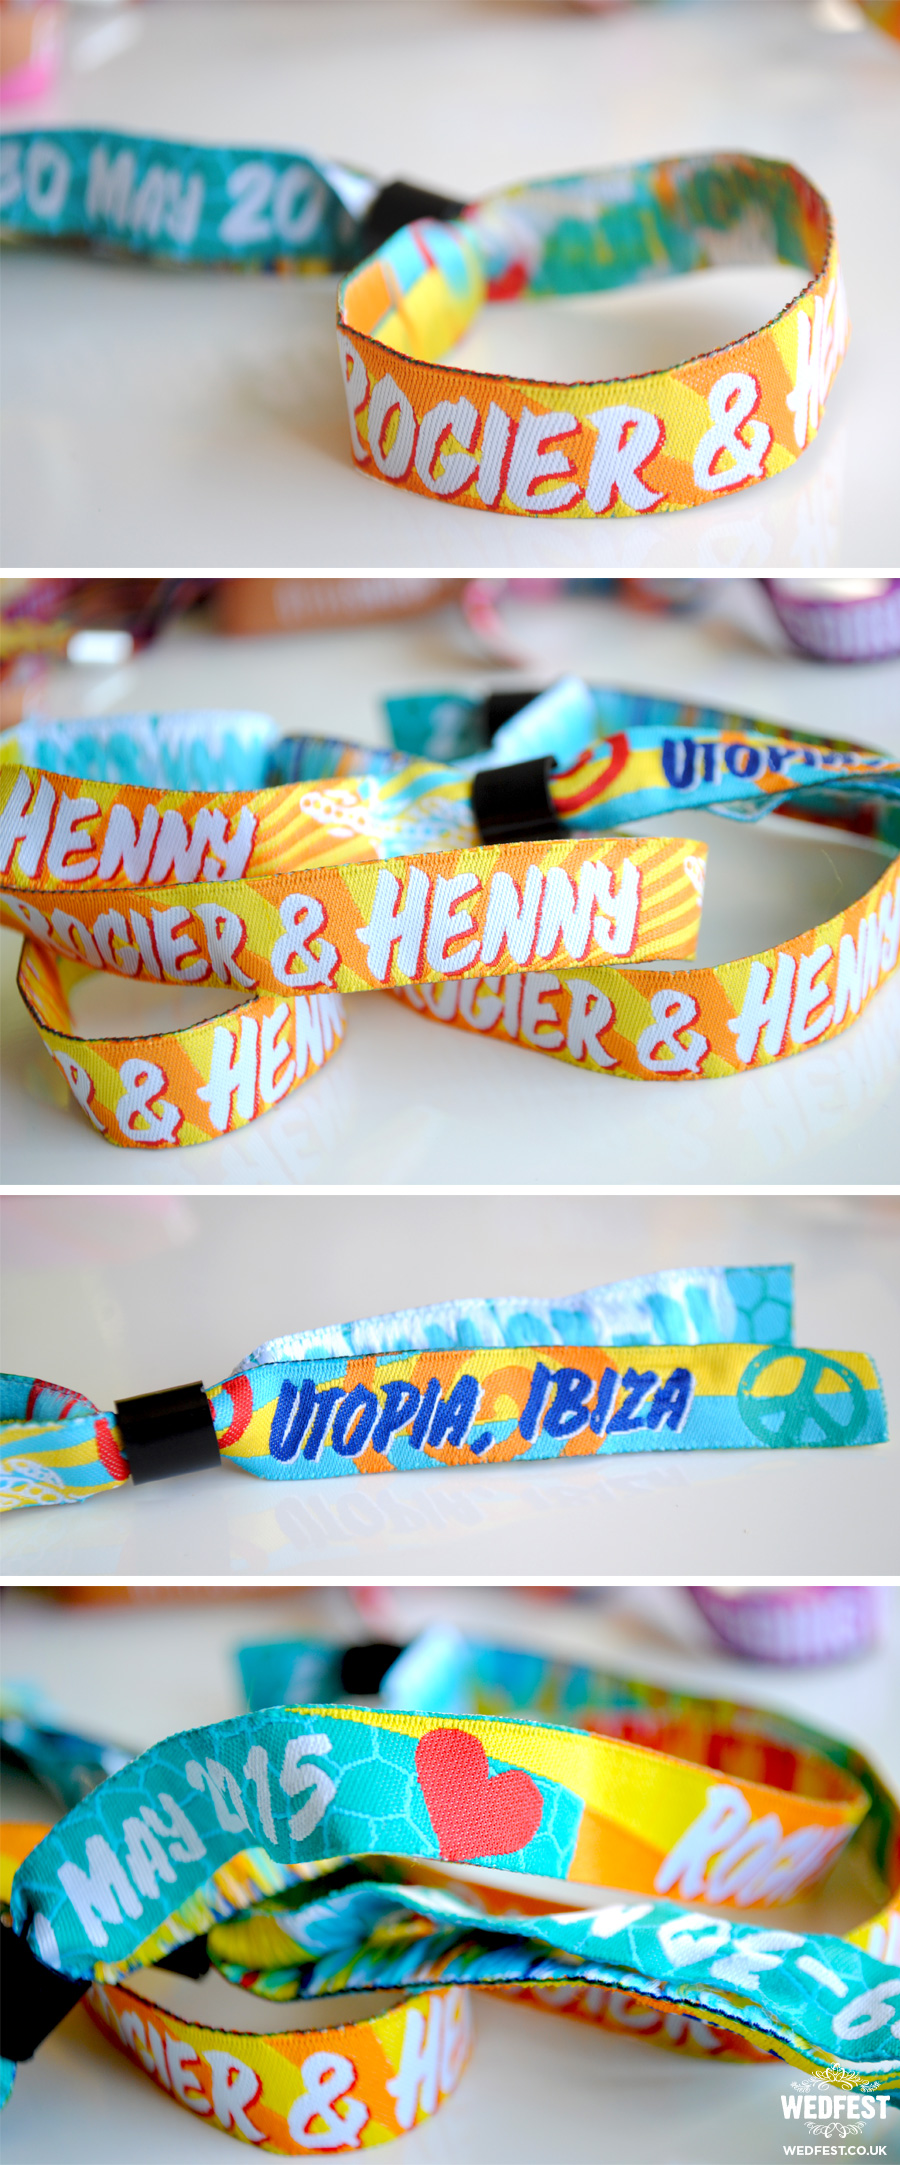 Utopia Ibiza Wedding Wristbands